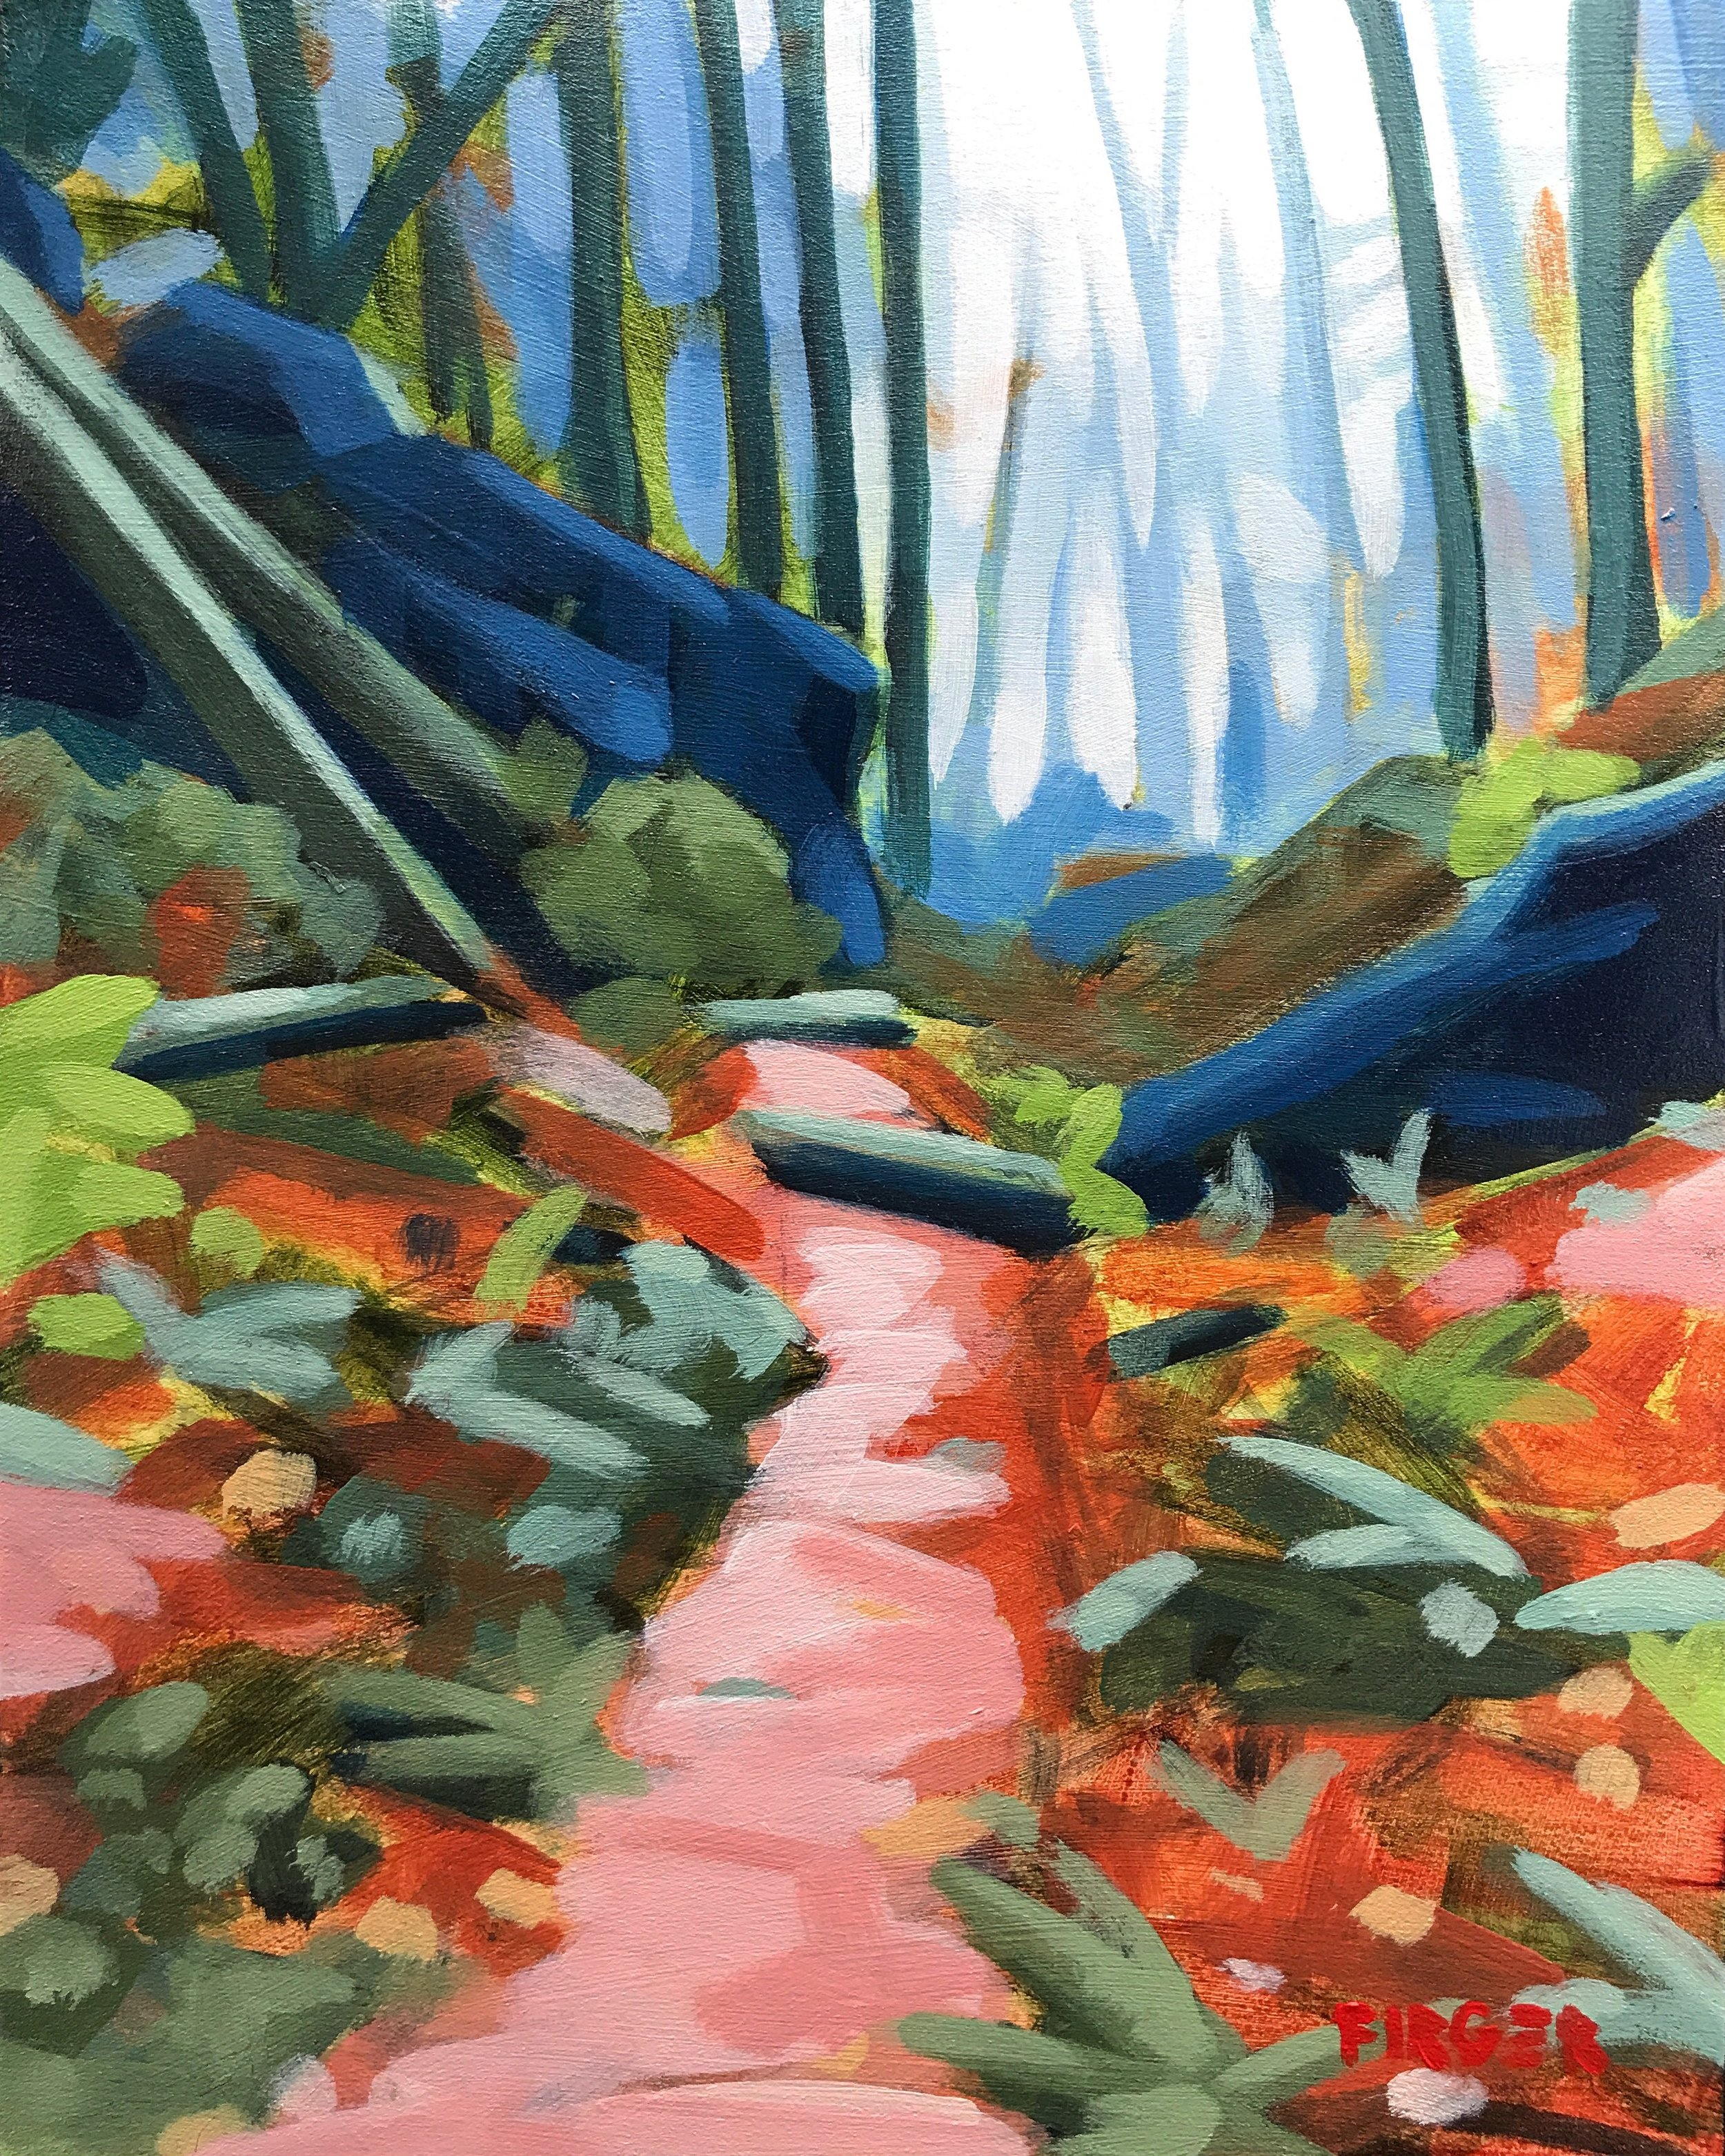 Green Mountain Trails - 8 x 10, Acrylic on Panel (SOLD)